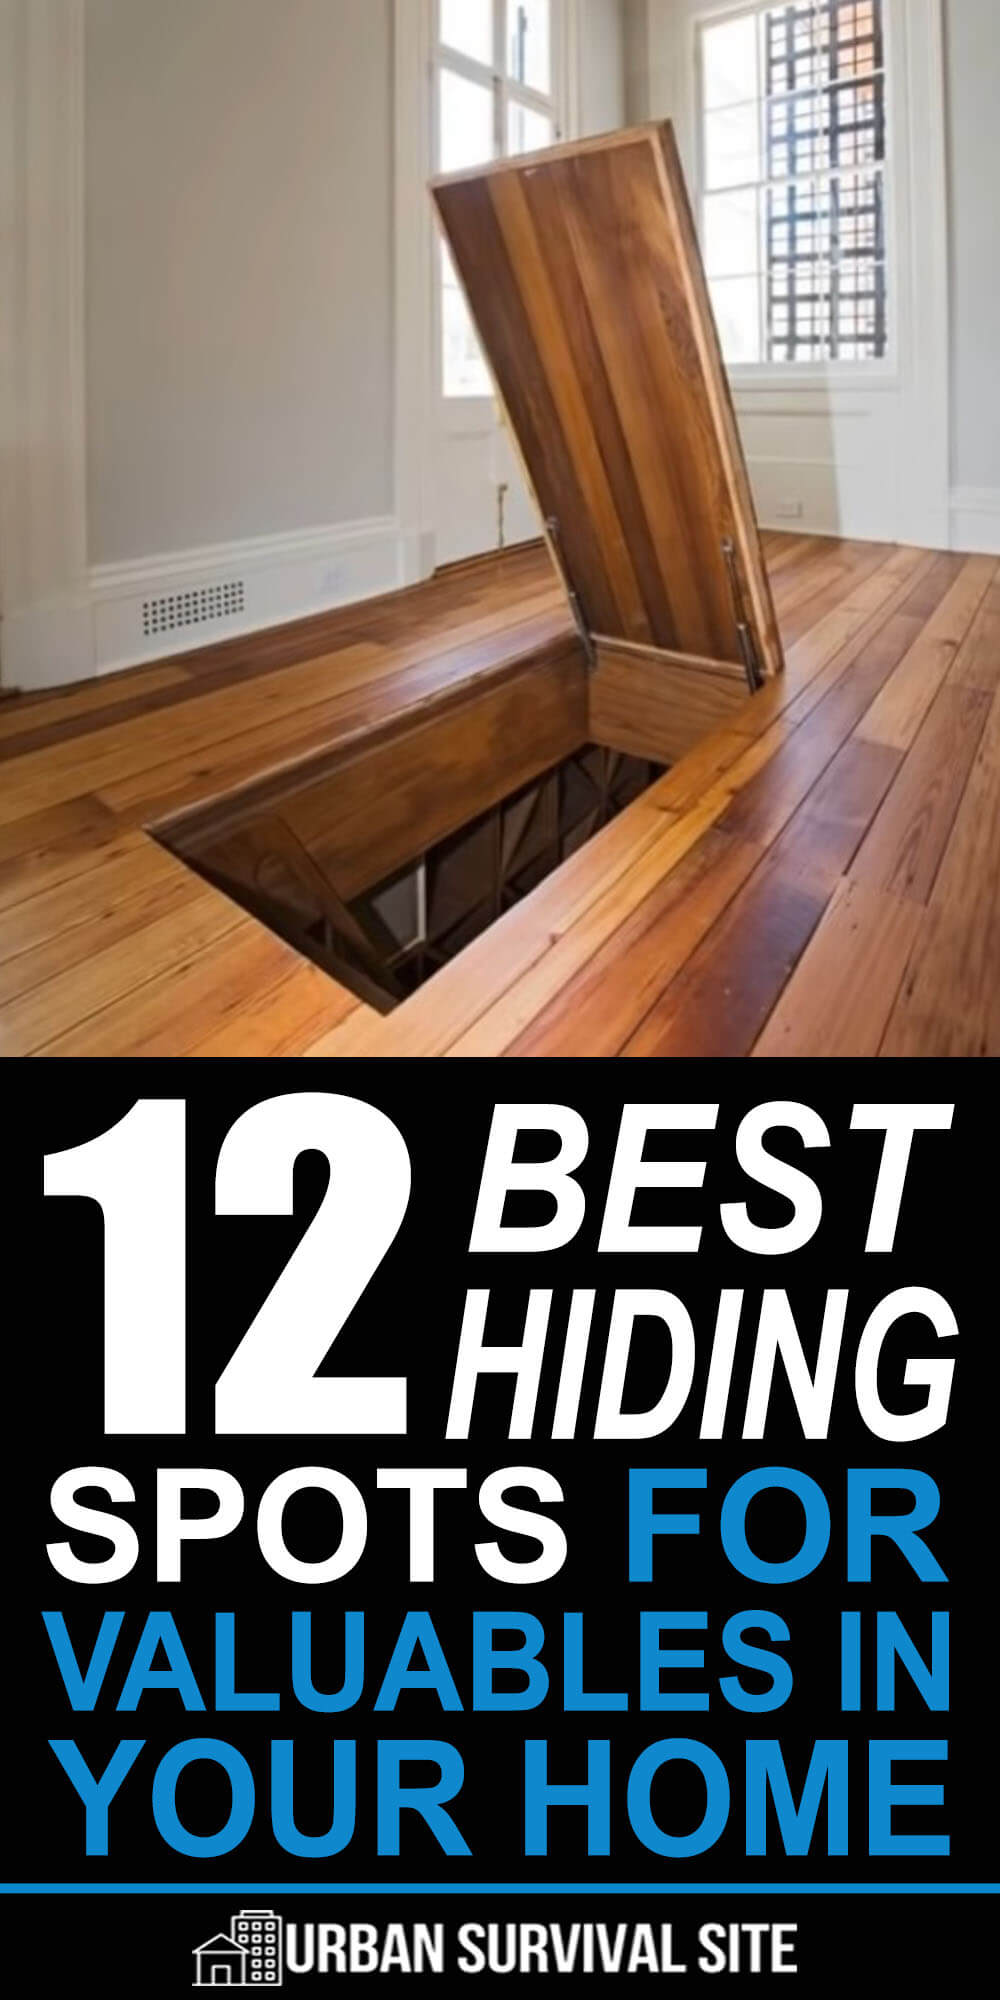 12 Best Hiding Spots For Valuables In Your Home